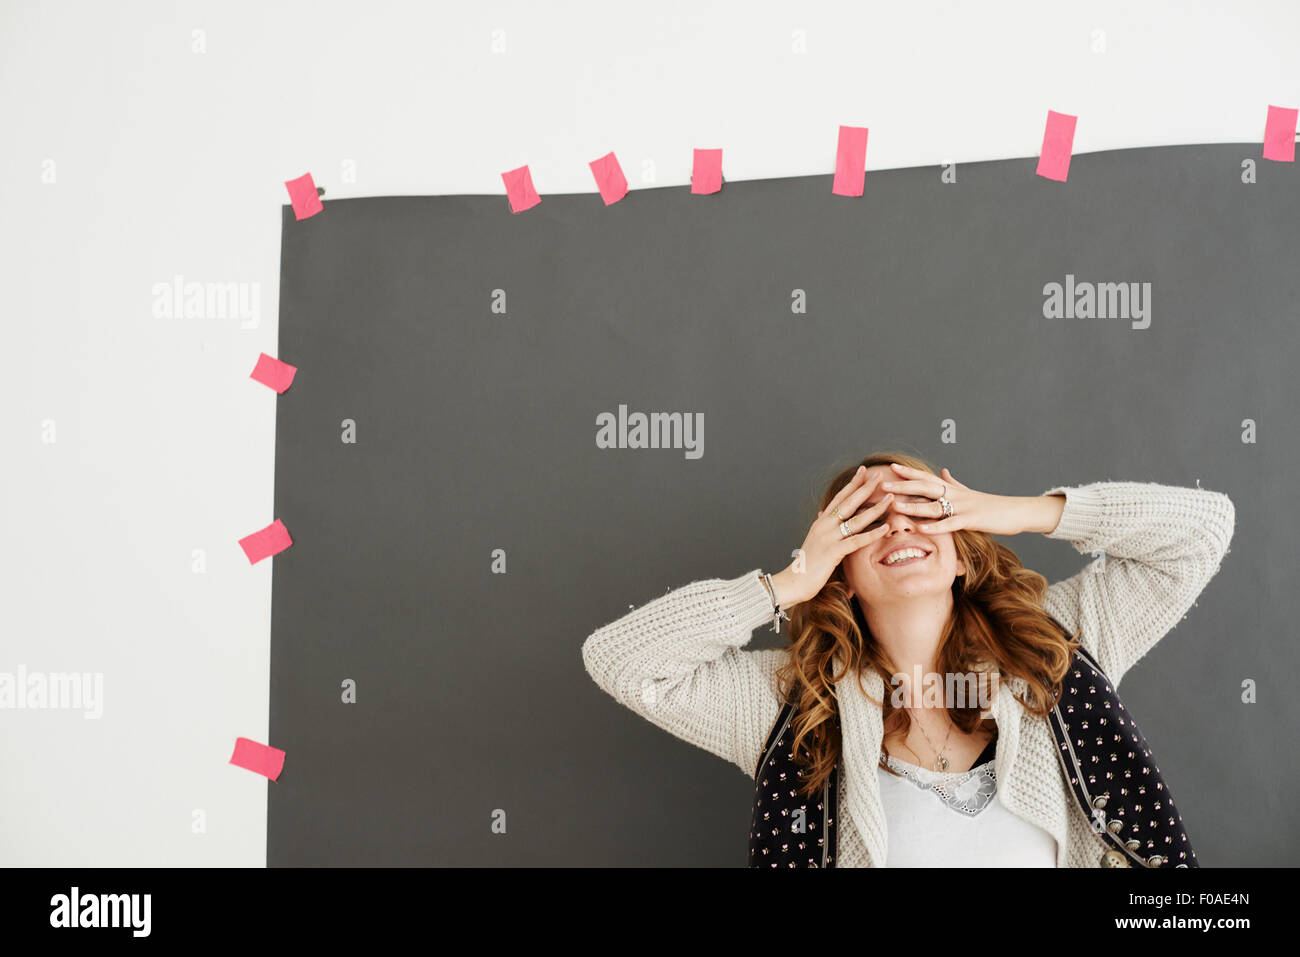 Mid adult woman smiling, hands covering eyes - Stock Image